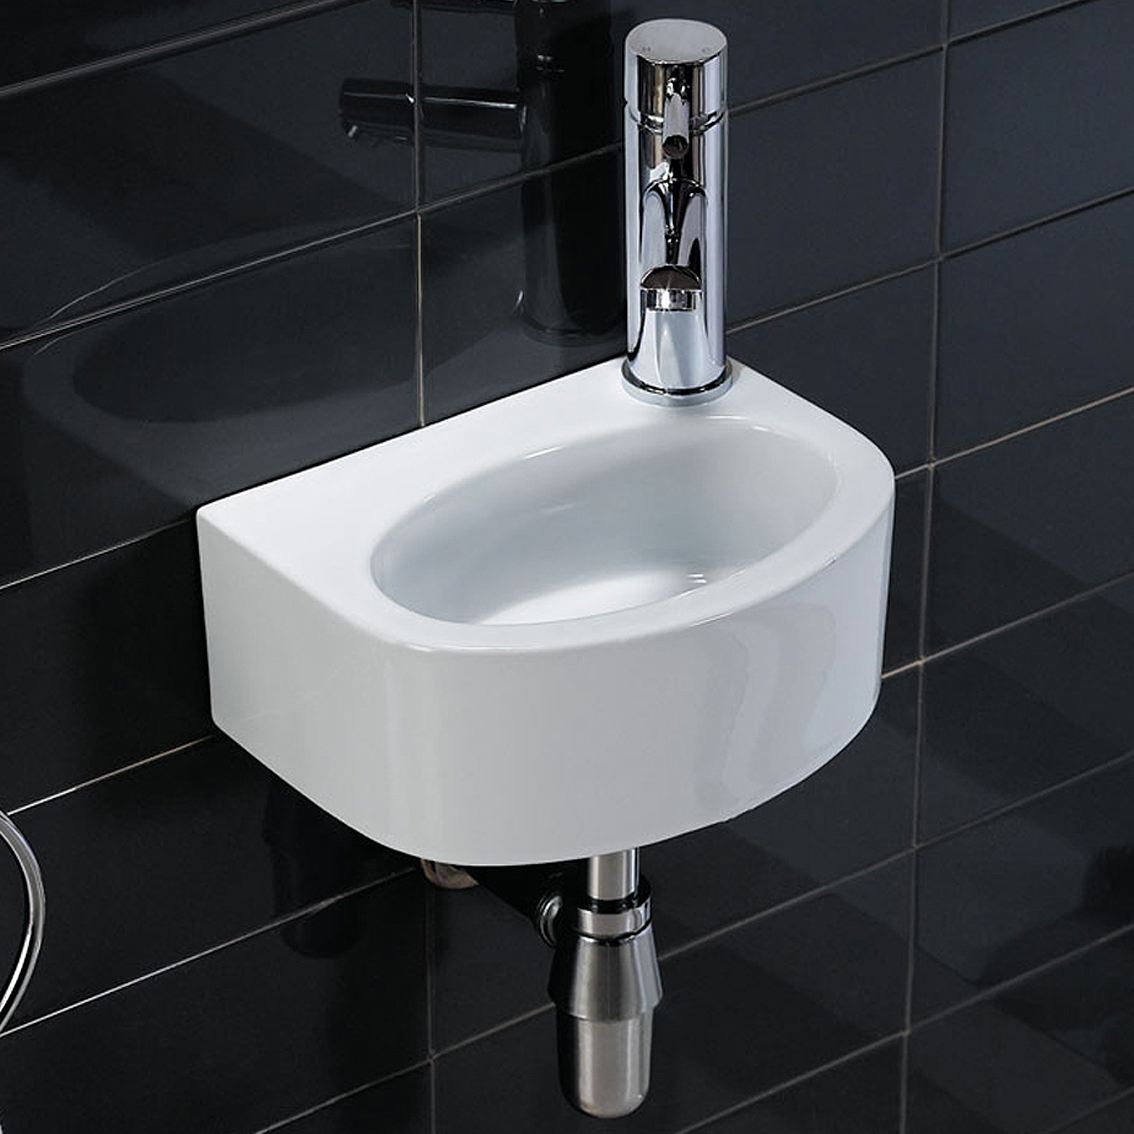 Washbasin Sink White High Gloss Small Cloakroom Wall Mounted Wash Basin